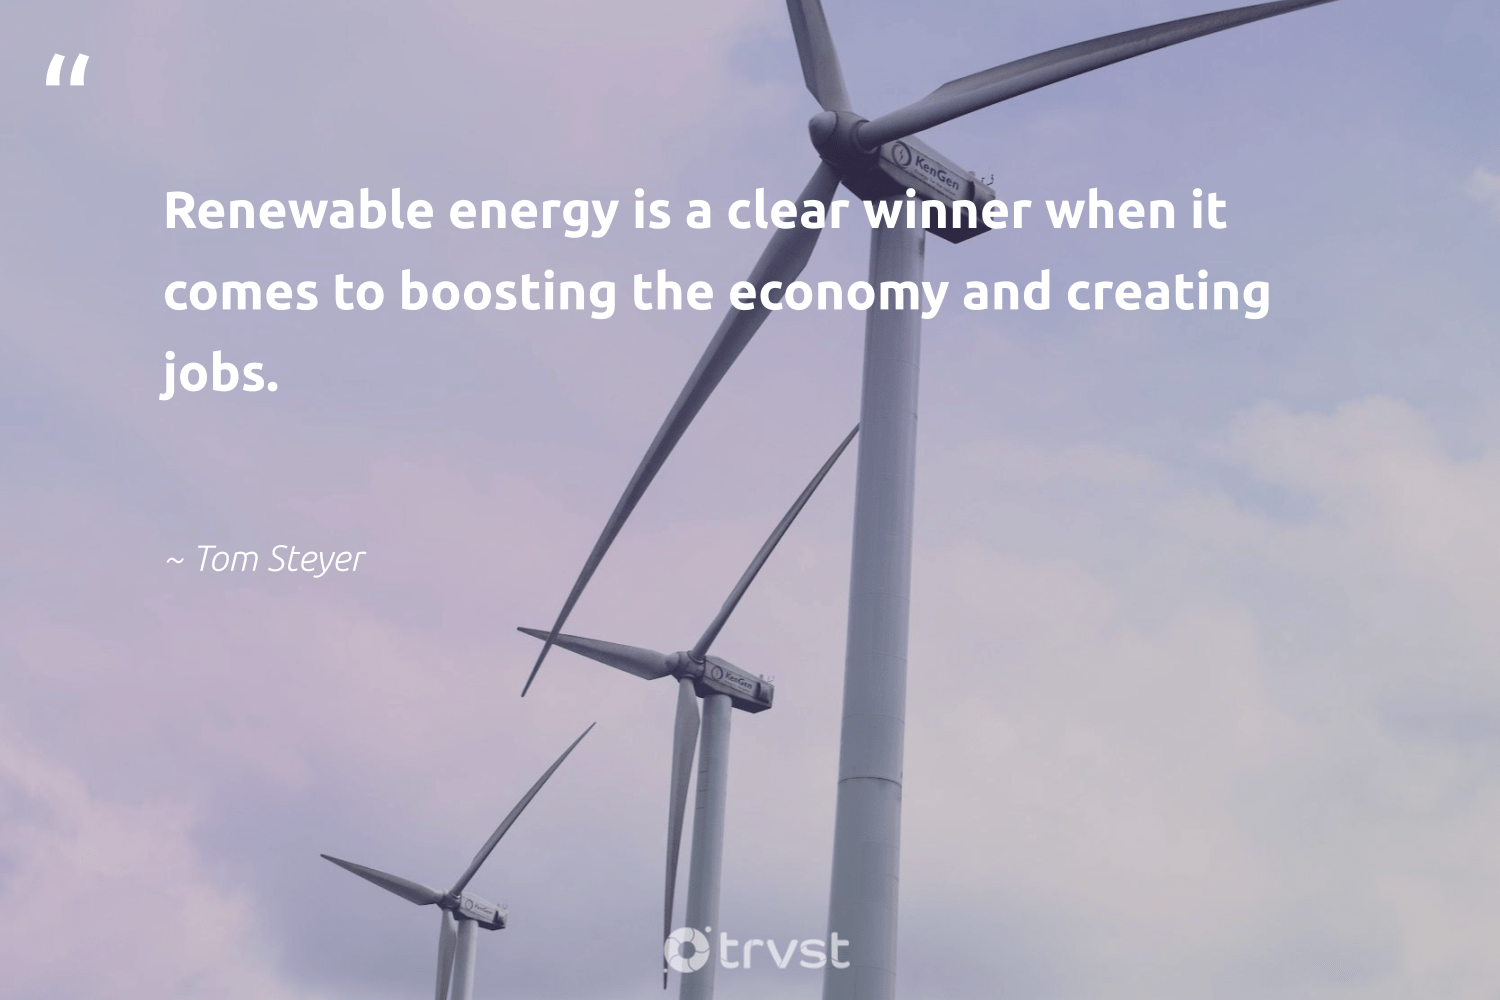 """""""Renewable energy is a clear winner when it comes to boosting the economy and creating jobs.""""  - Tom Steyer #trvst #quotes #renewableenergy #energy #renewable #cleanenergy #100percentrenewable #ecofriendly #sustainability #thinkgreen #lowcarbon #100percentclean"""